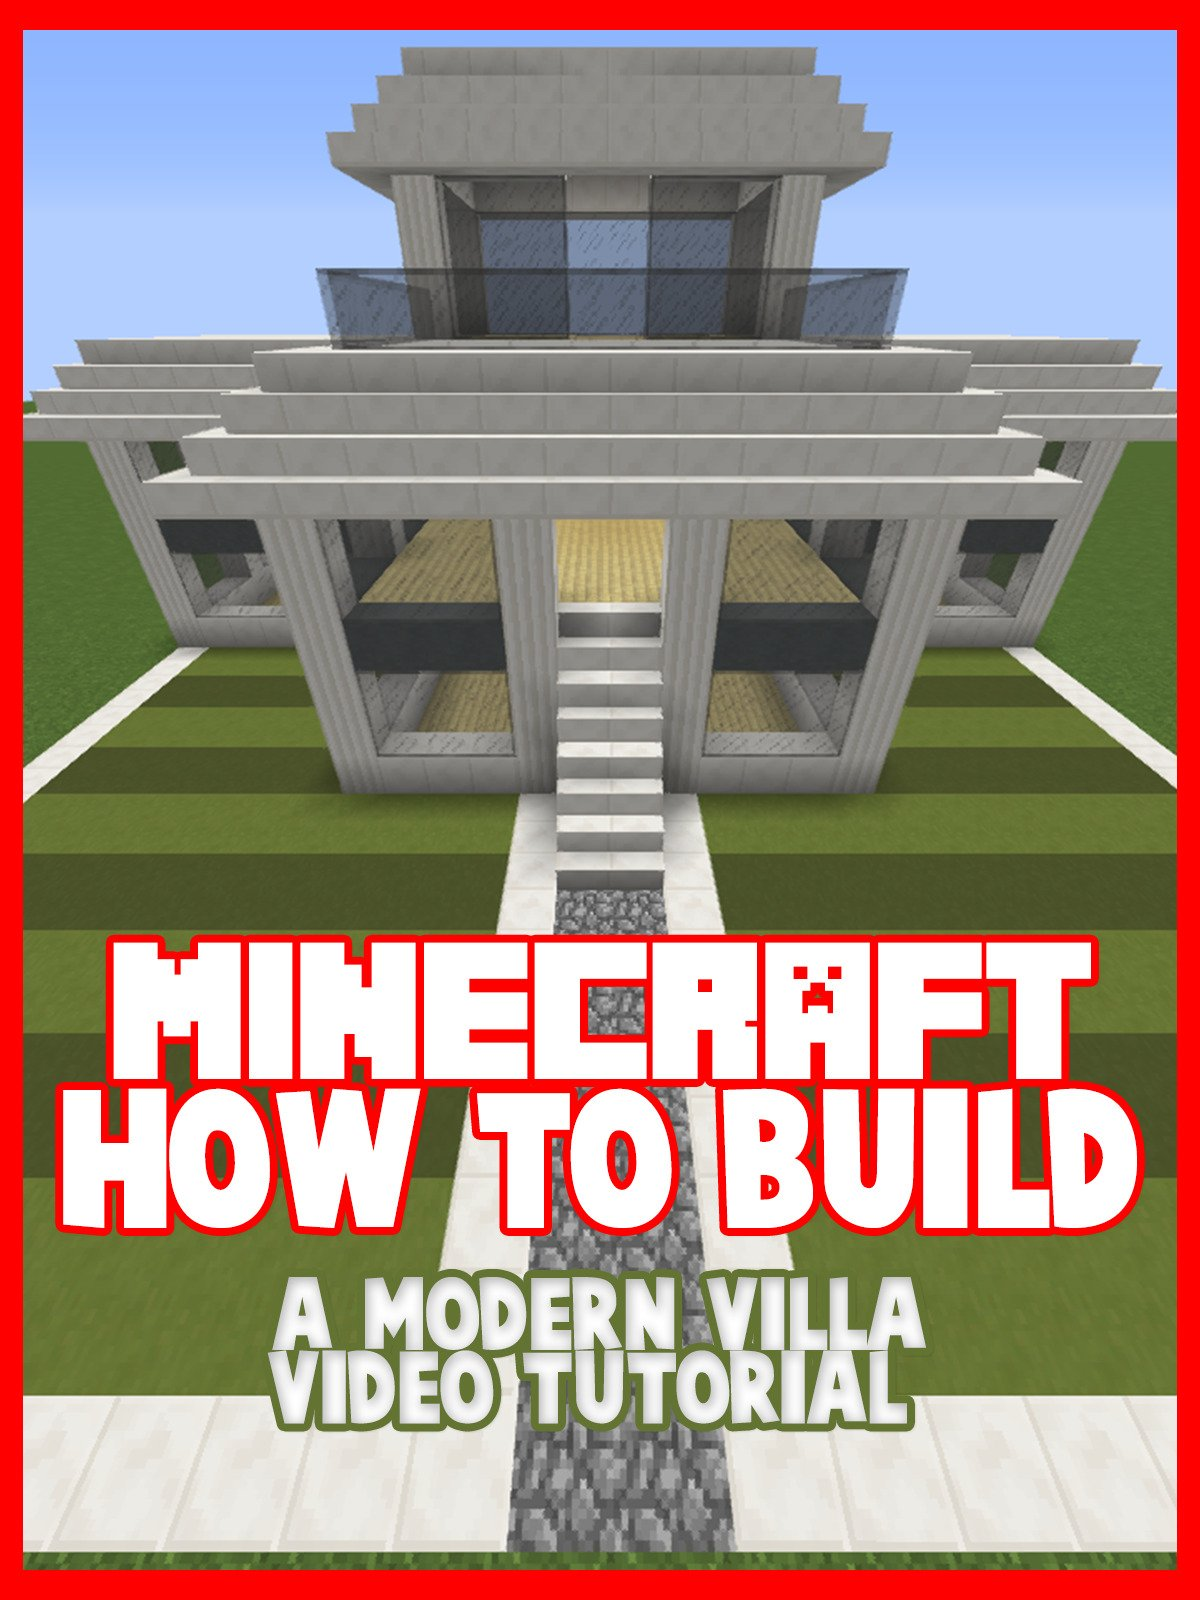 Clip: Minecraft: How to Build a Modern Villa